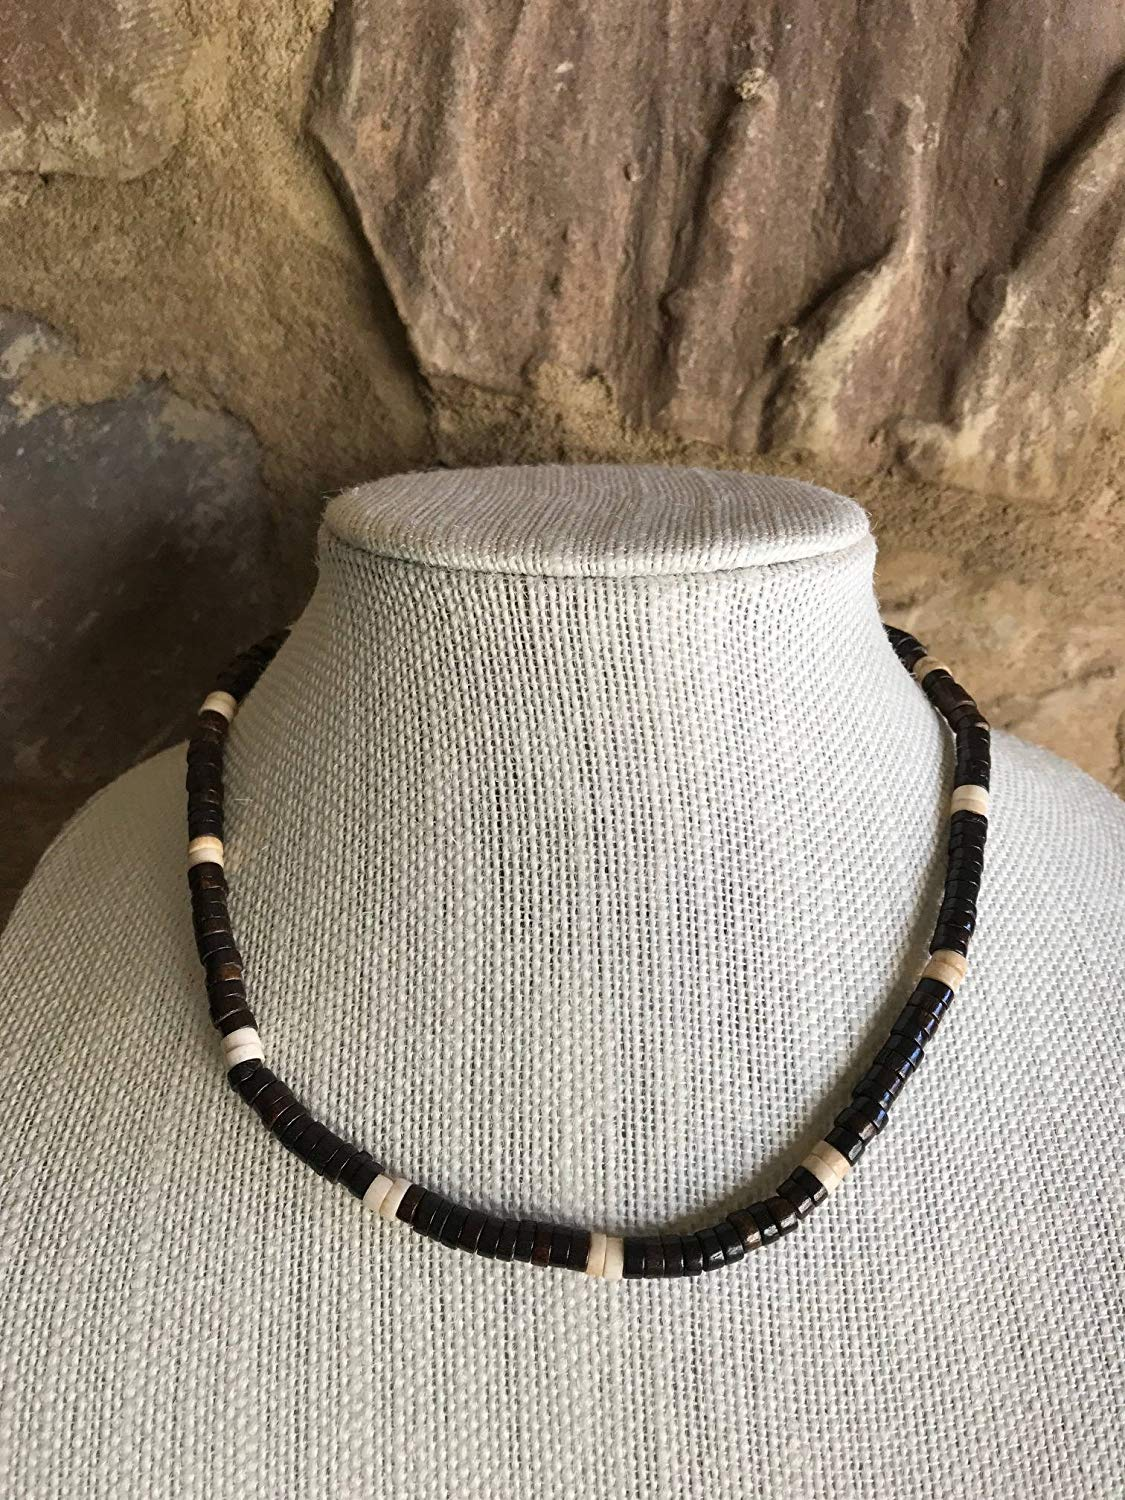 6cb5008178bc2a Get Quotations · Vintage Multicolor Puka Shell Heishi Bead Choker Necklace,  Boho Necklace, Hippie Necklace, Surfer